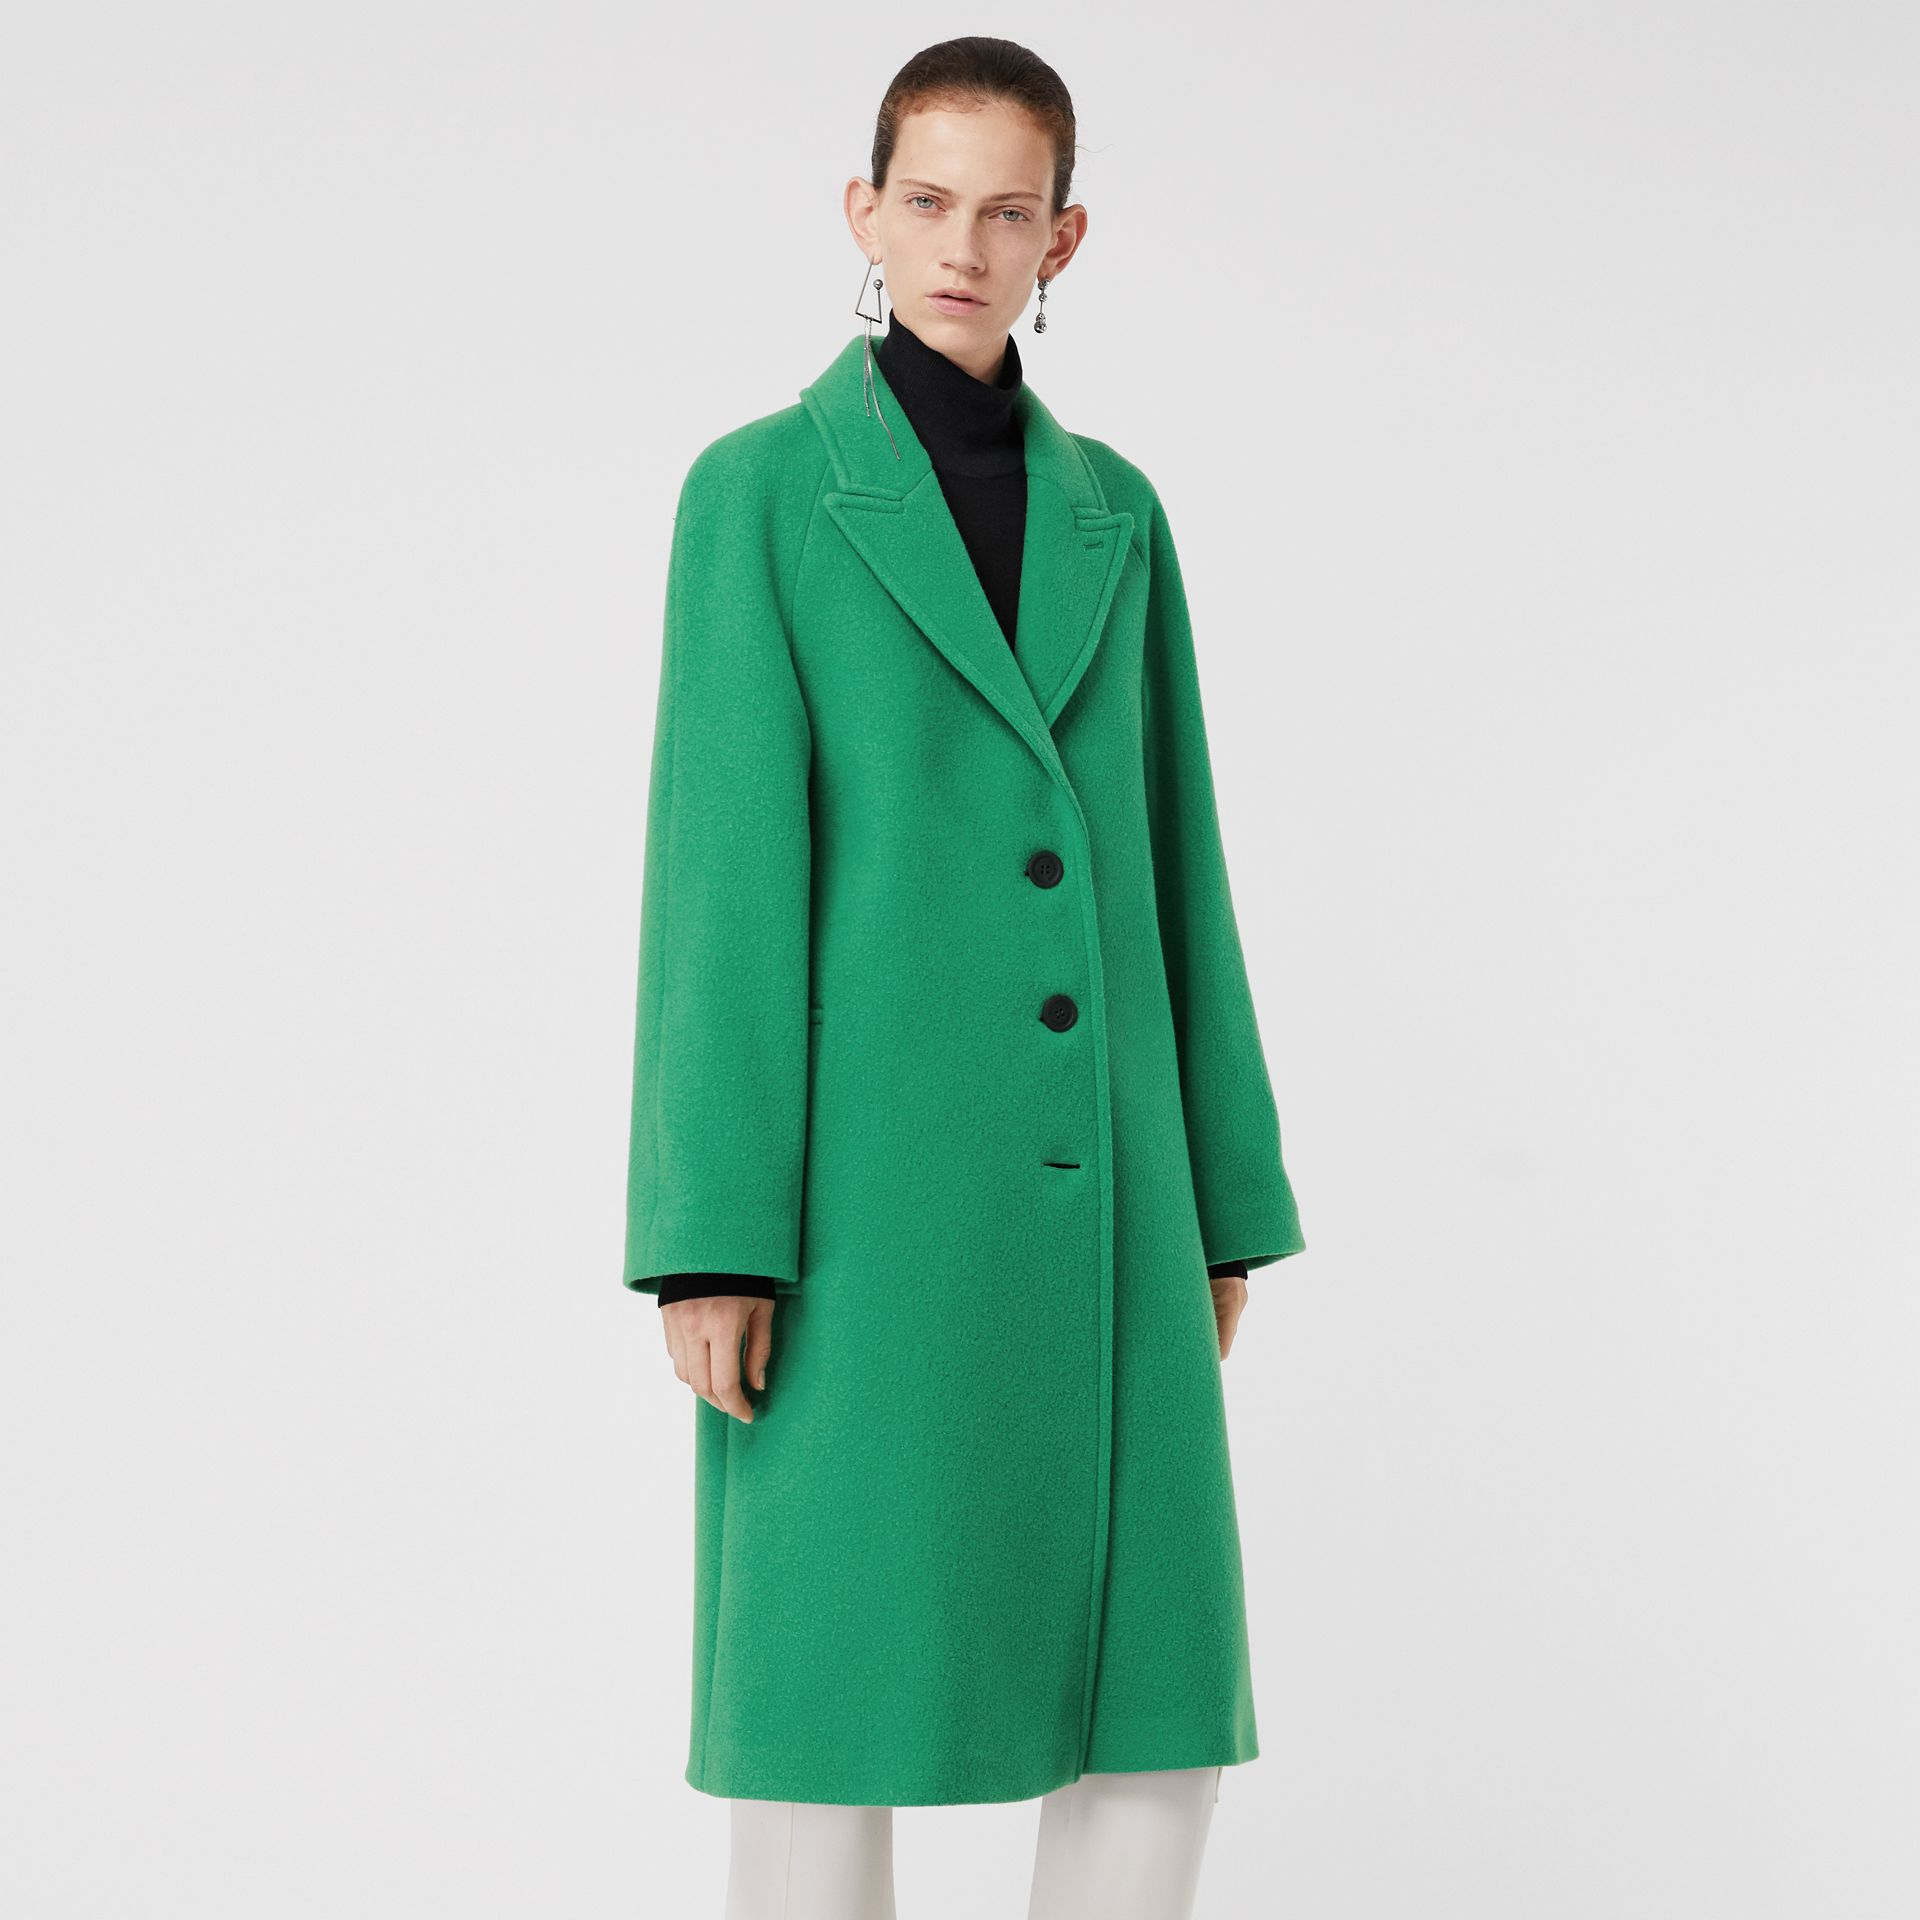 Wool Blend Tailored Coat in Bright Green - Women | Burberry Hong Kong - gallery image 5